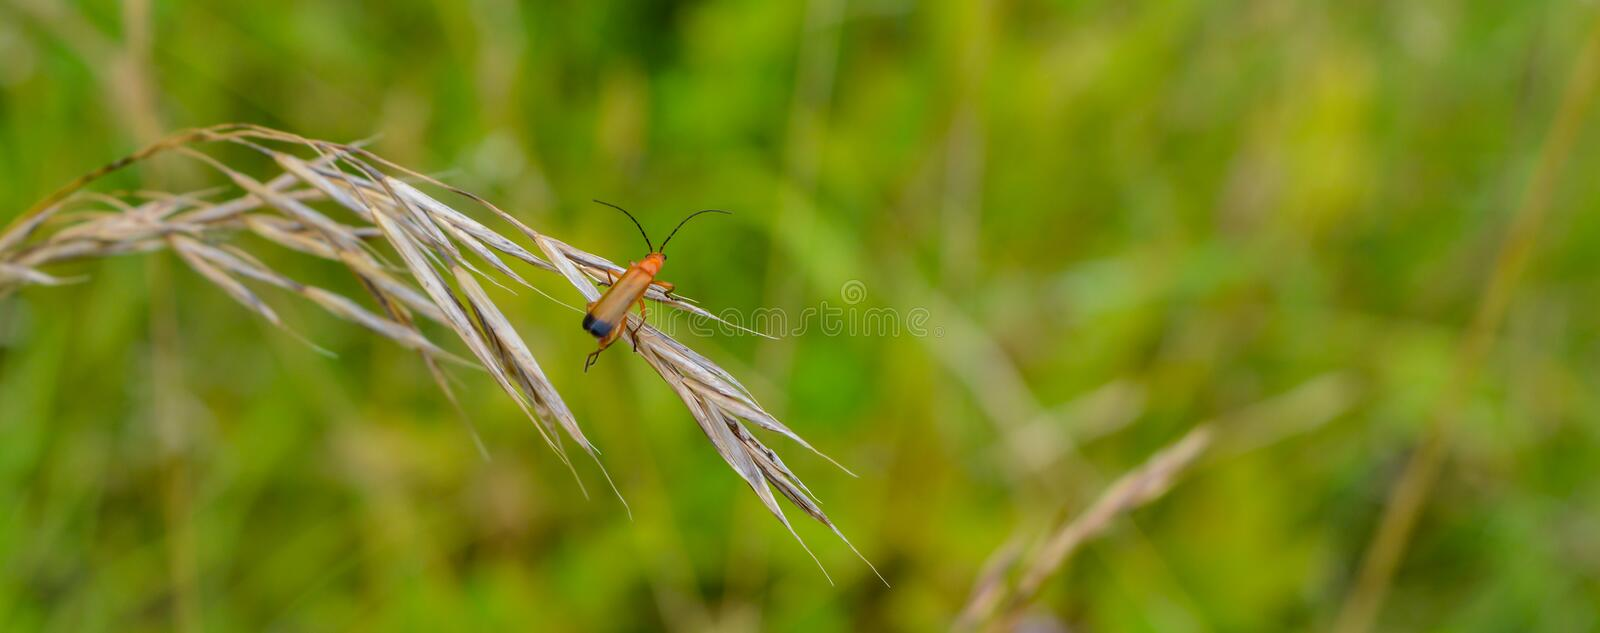 Red soldier beetle stock photo